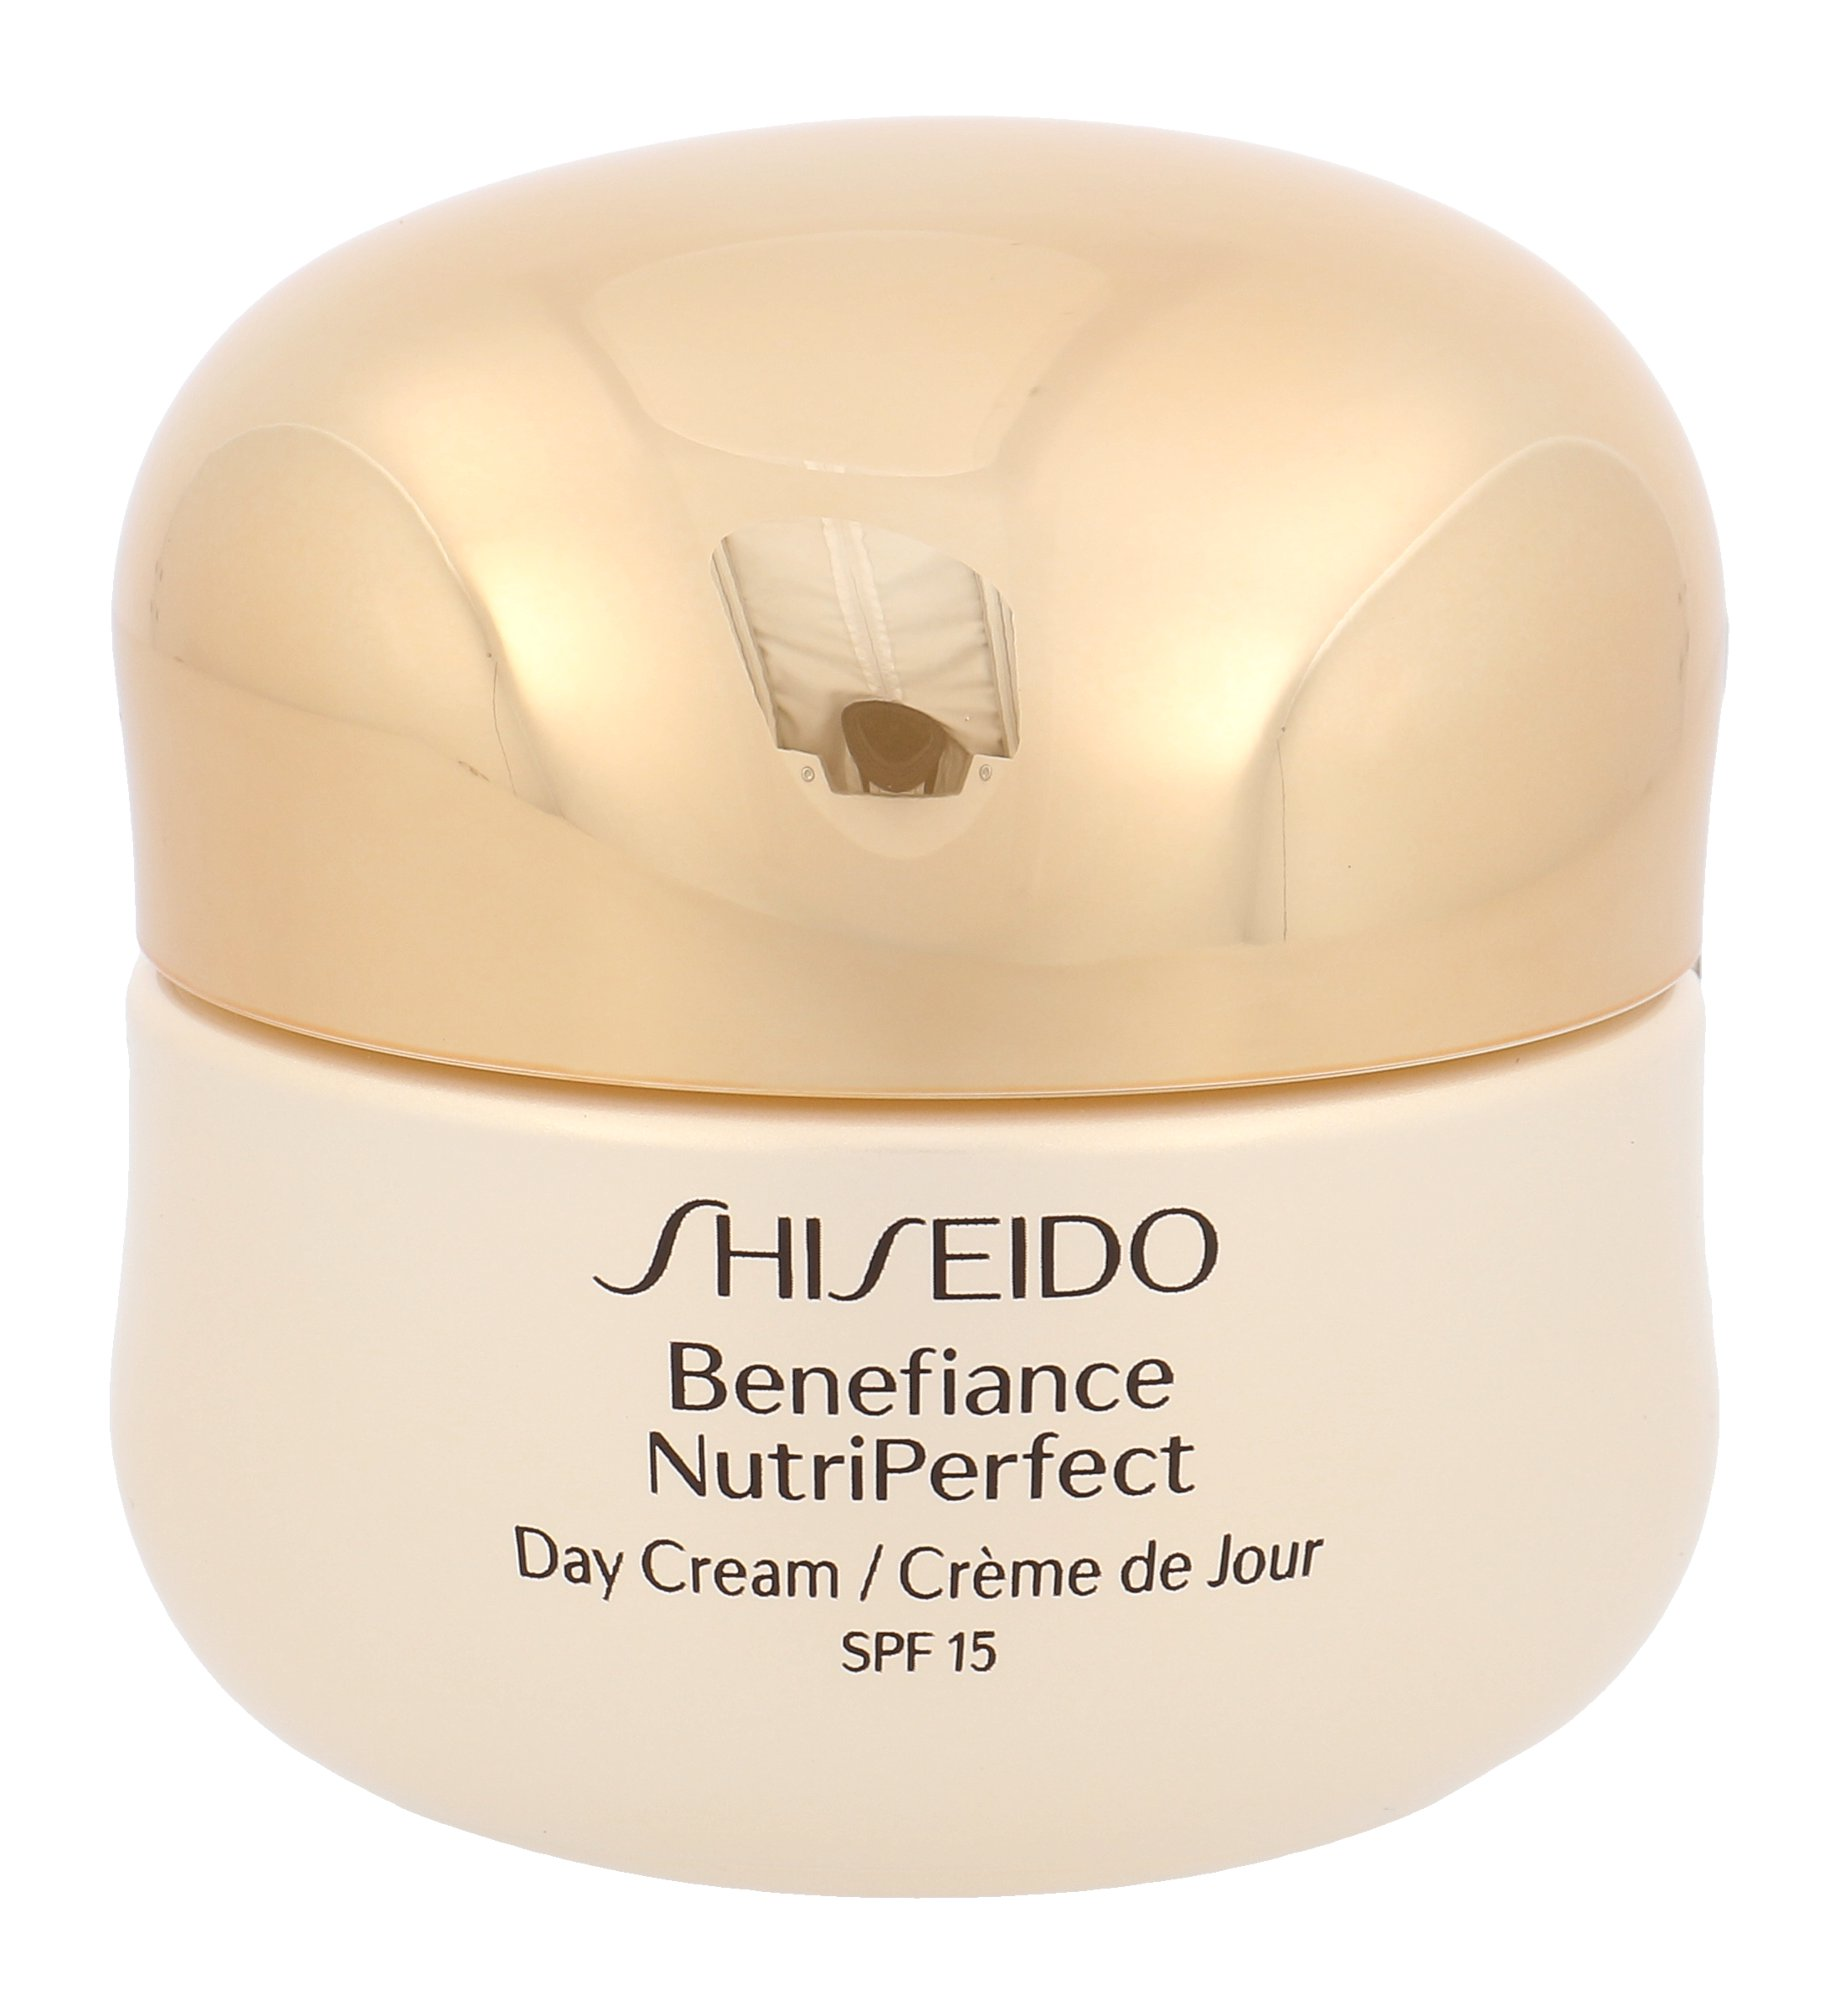 Shiseido Benefiance NutriPerfect, Denný arcápoló cream 50ml - SPF15